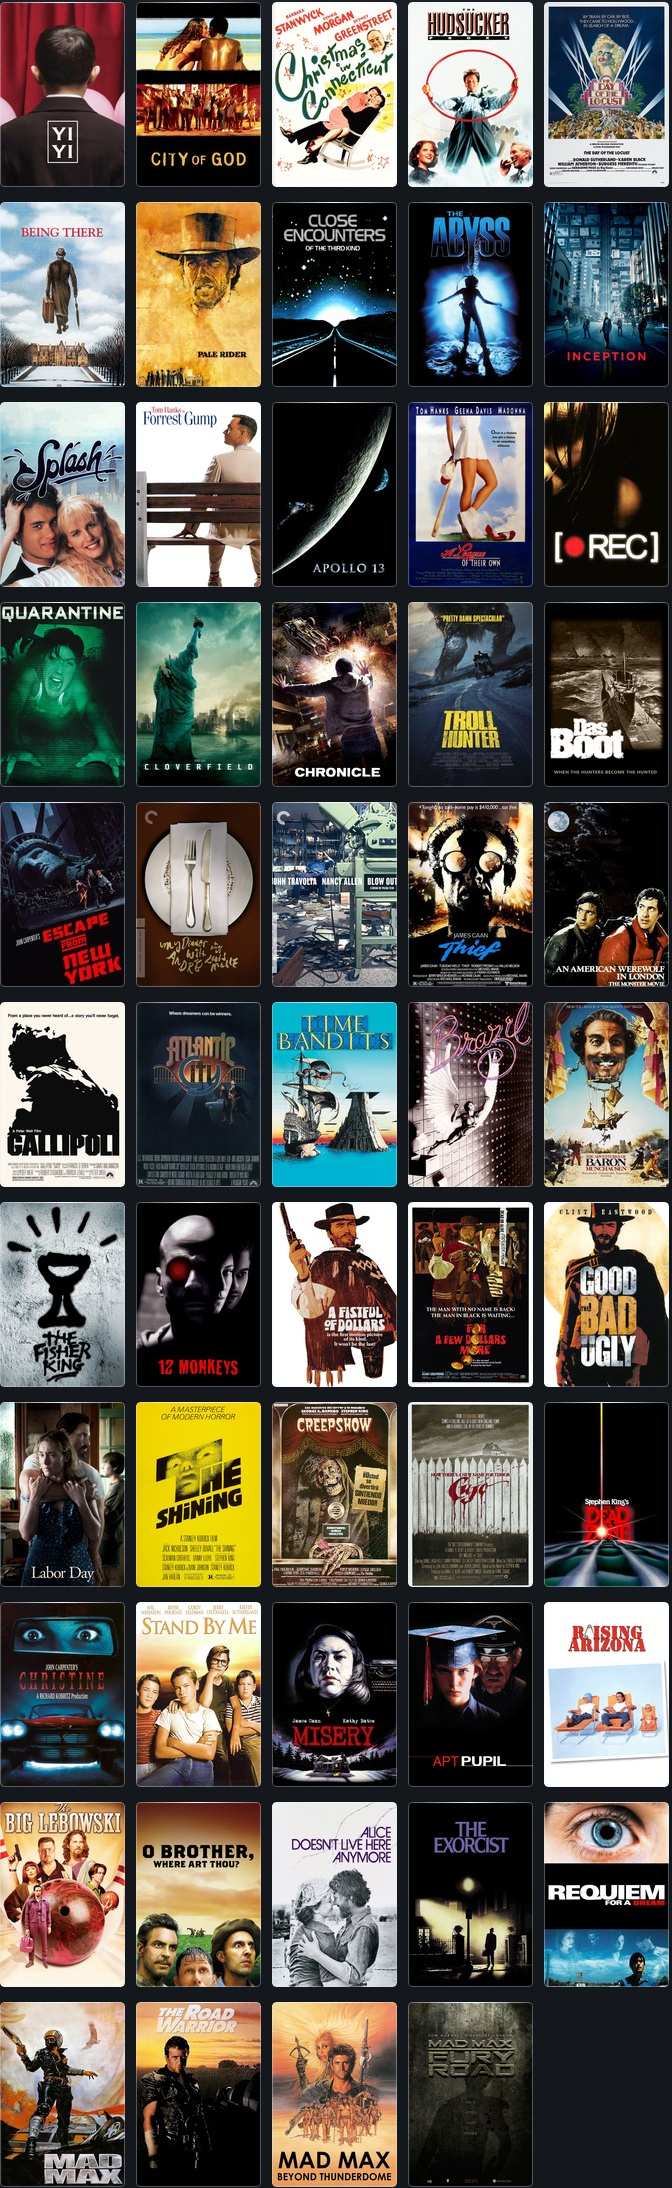 The Next Reel's Letterboxd Watchlist